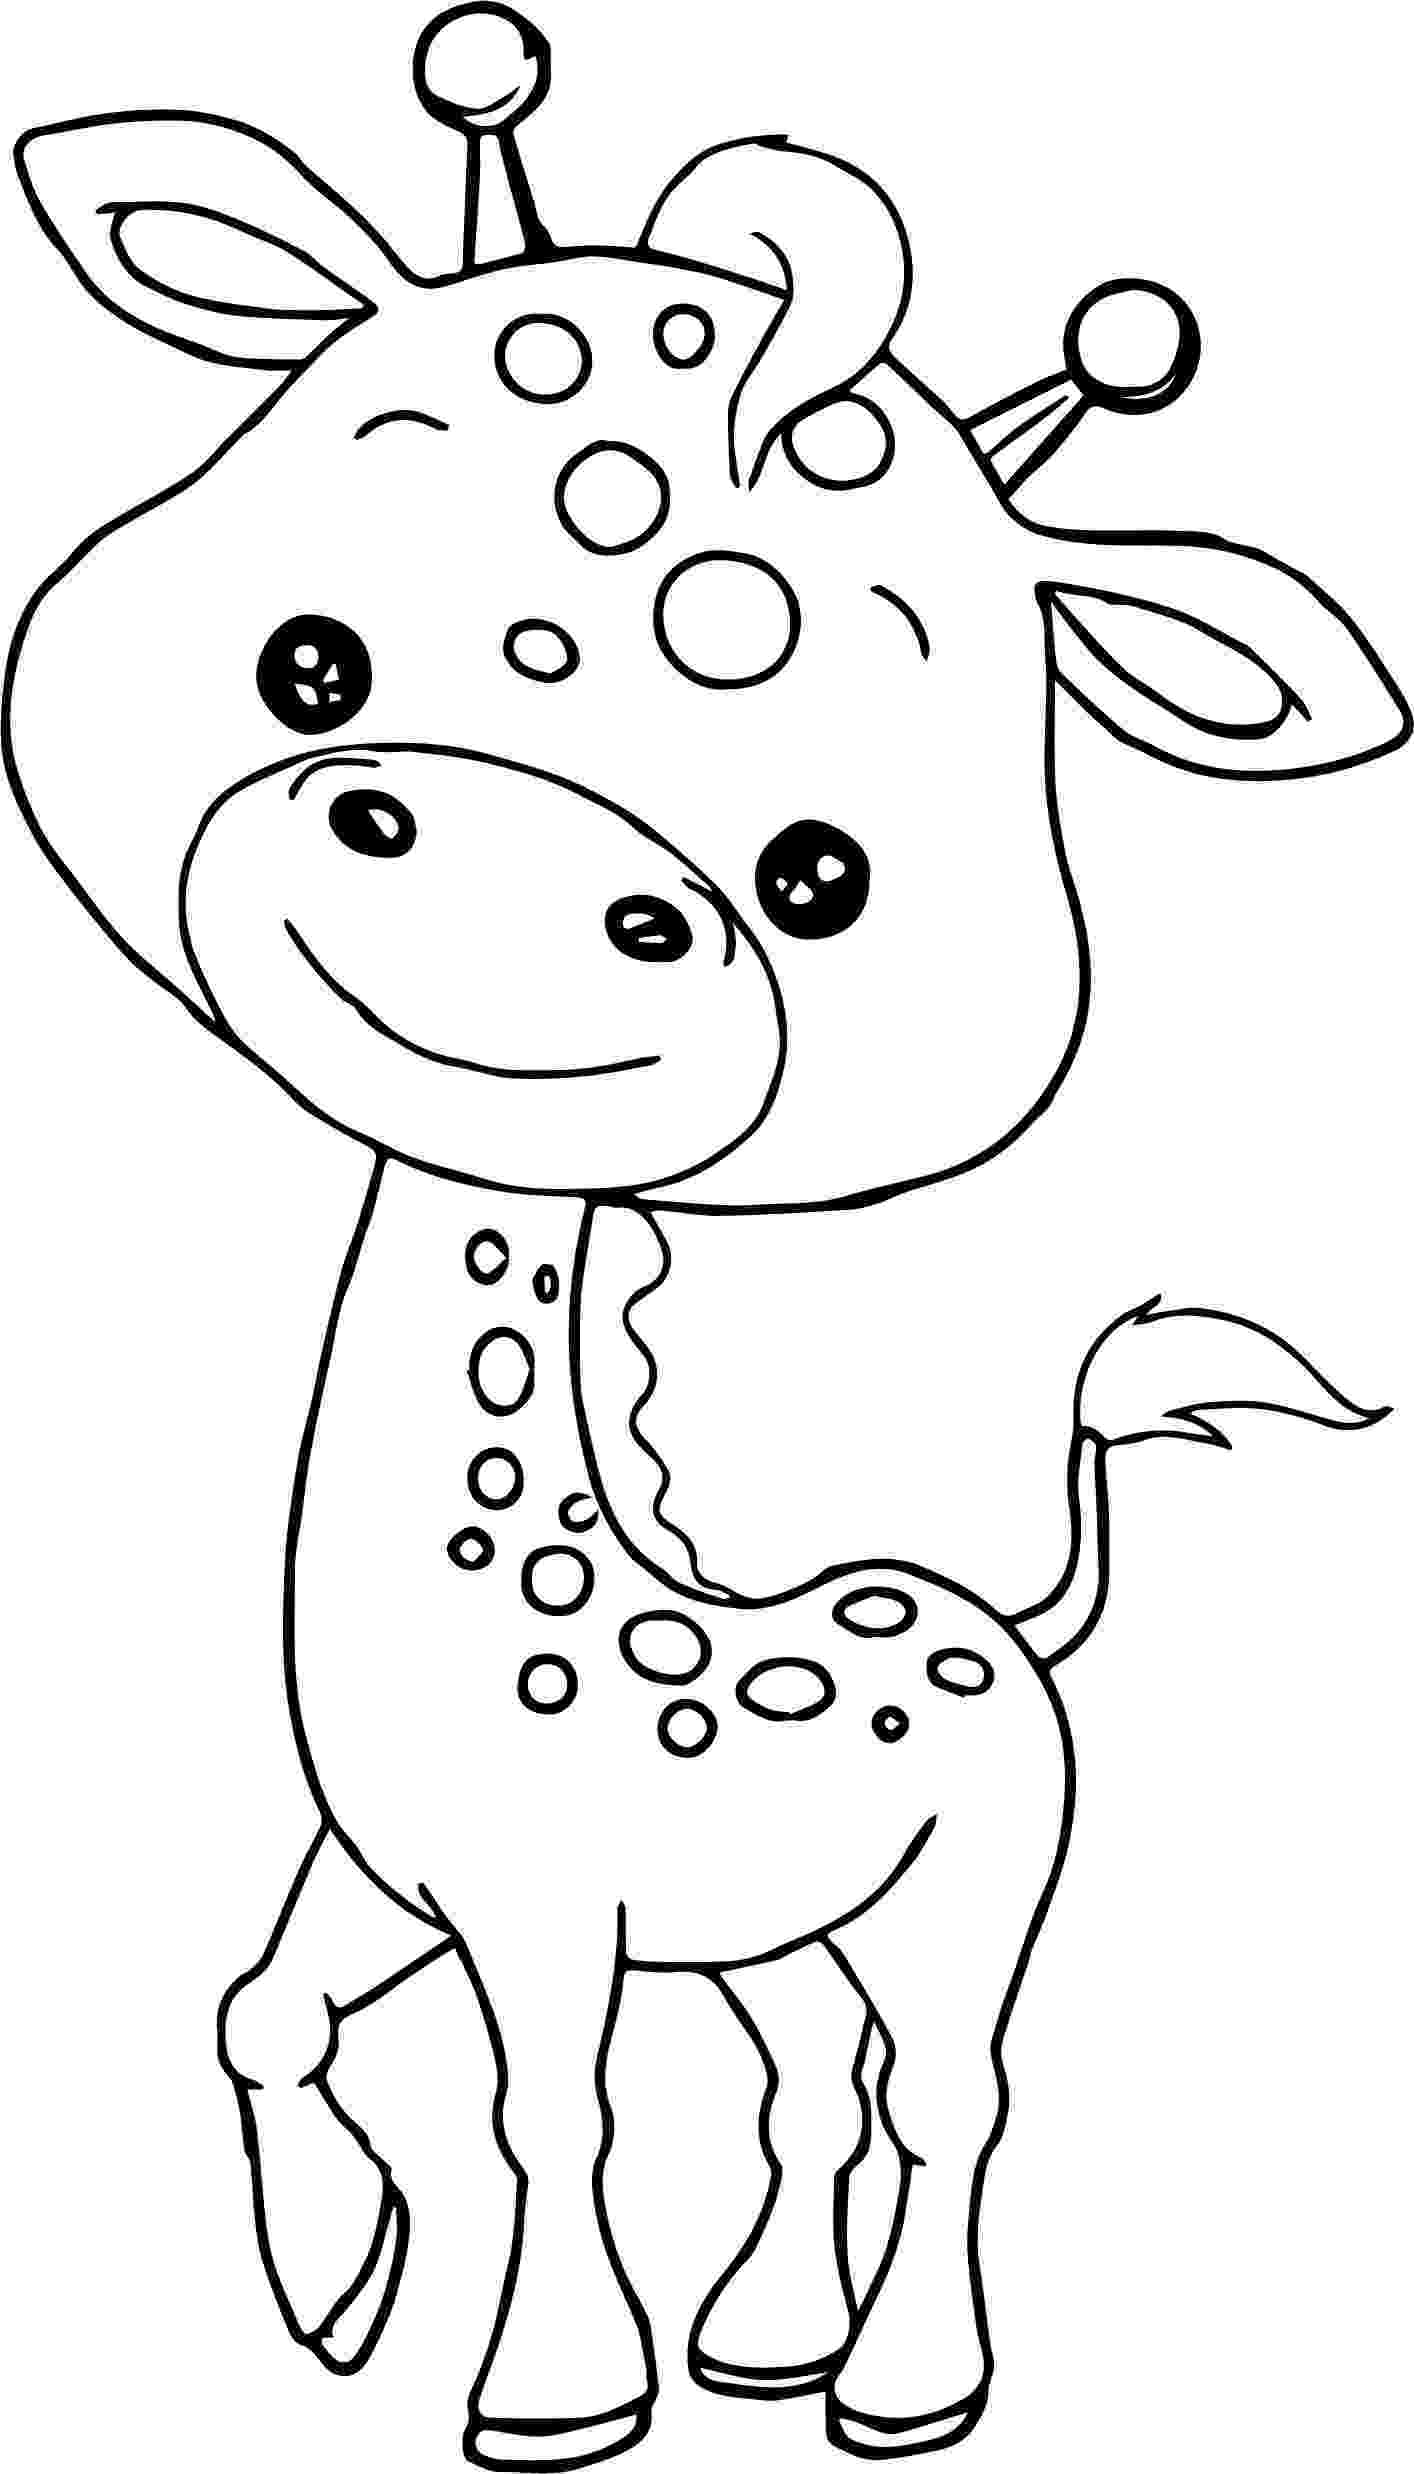 baby animal coloring page baby animal coloring pages best coloring pages for kids page baby animal coloring